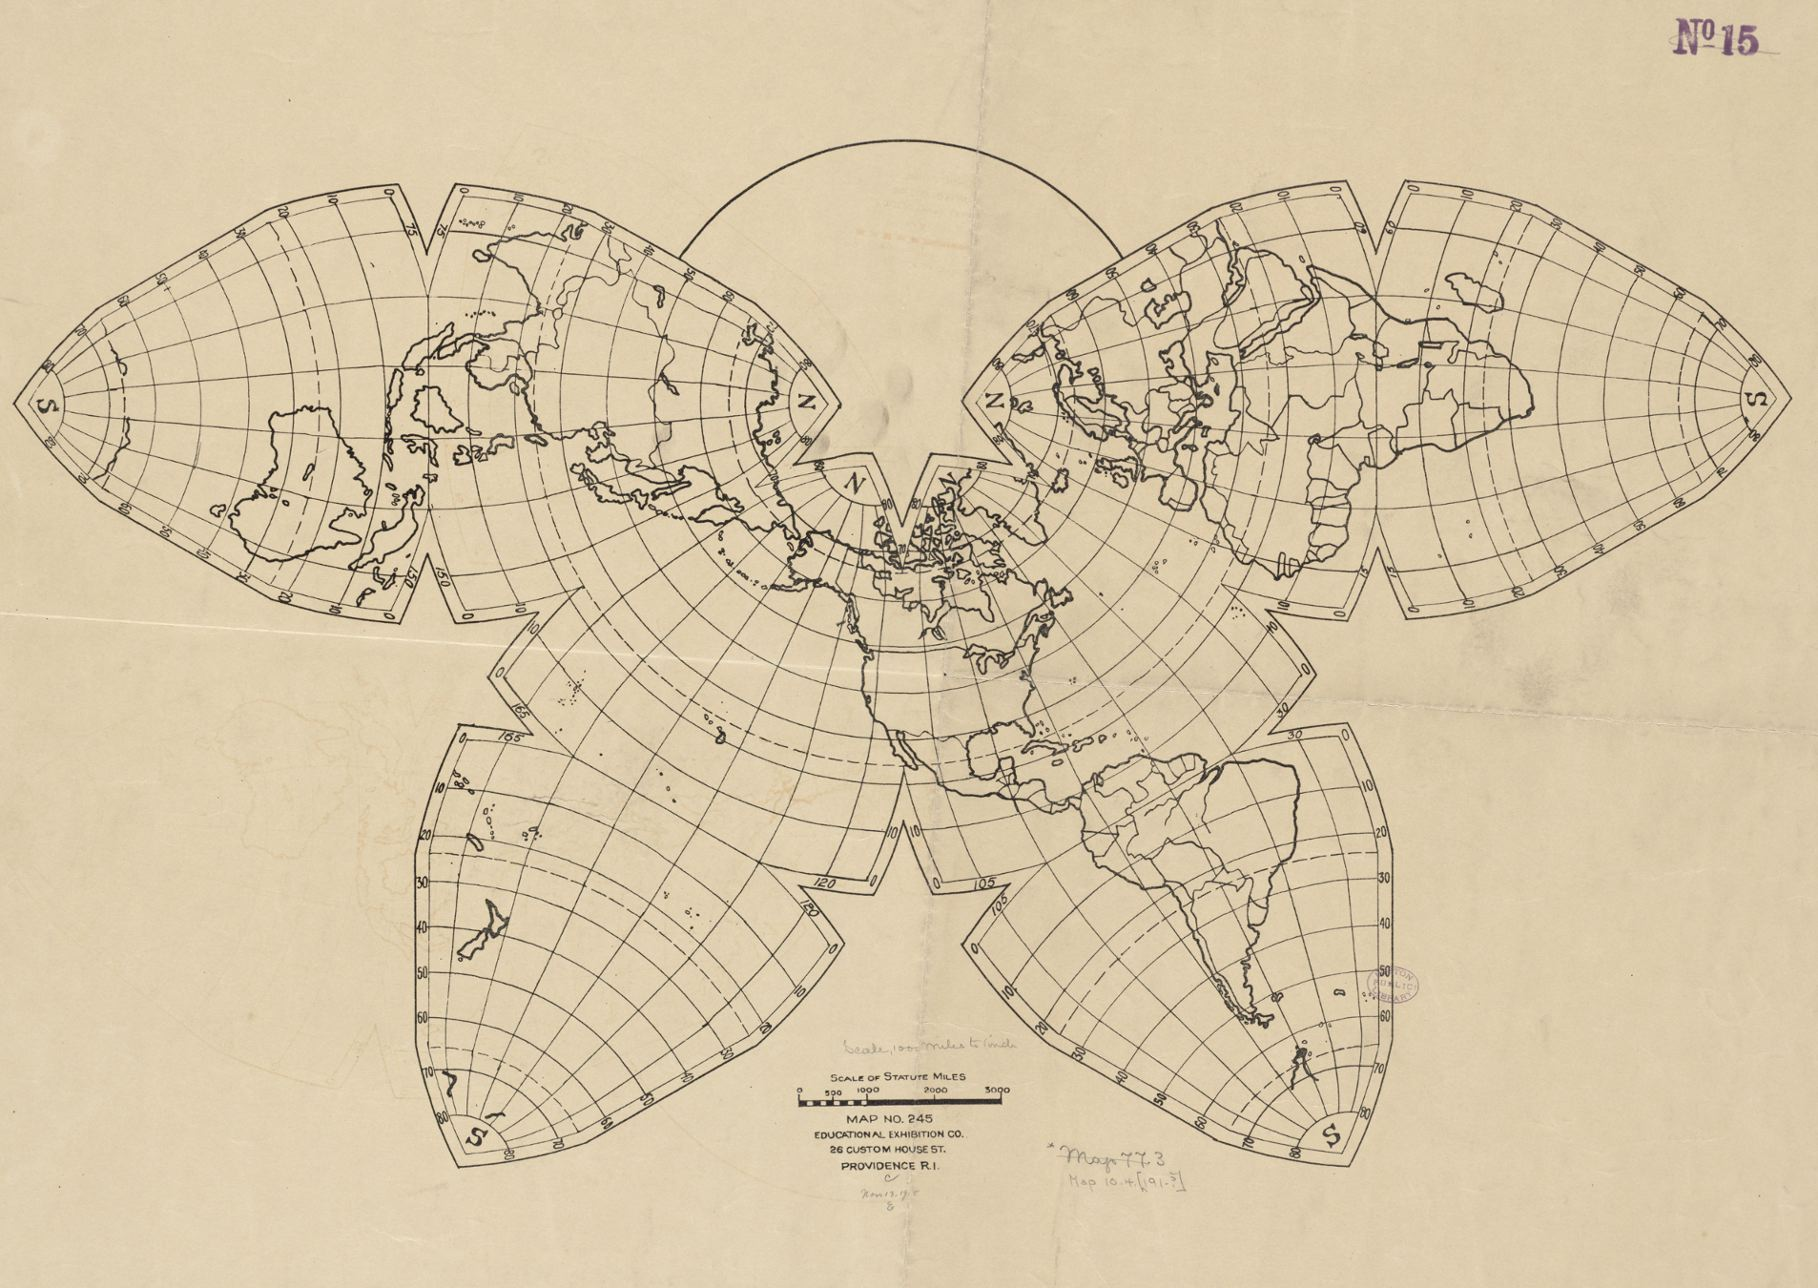 1918 Cahill map